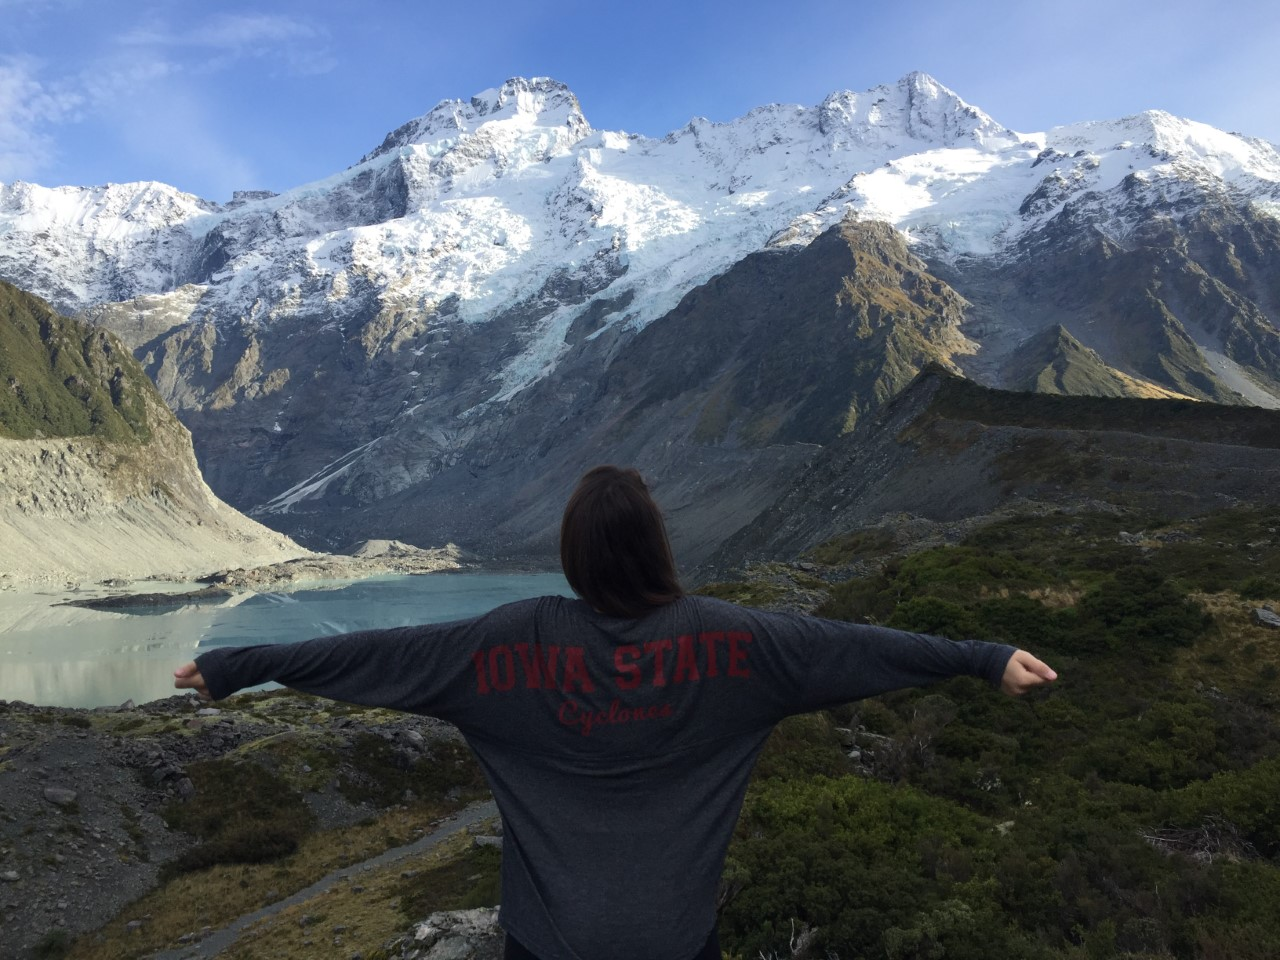 This photo was taken in Aoraki Mount Cook National Park, New Zealand. Laurel Baar ('19 statistics) studied at the University of Otago, Dunedin in New Zealand.